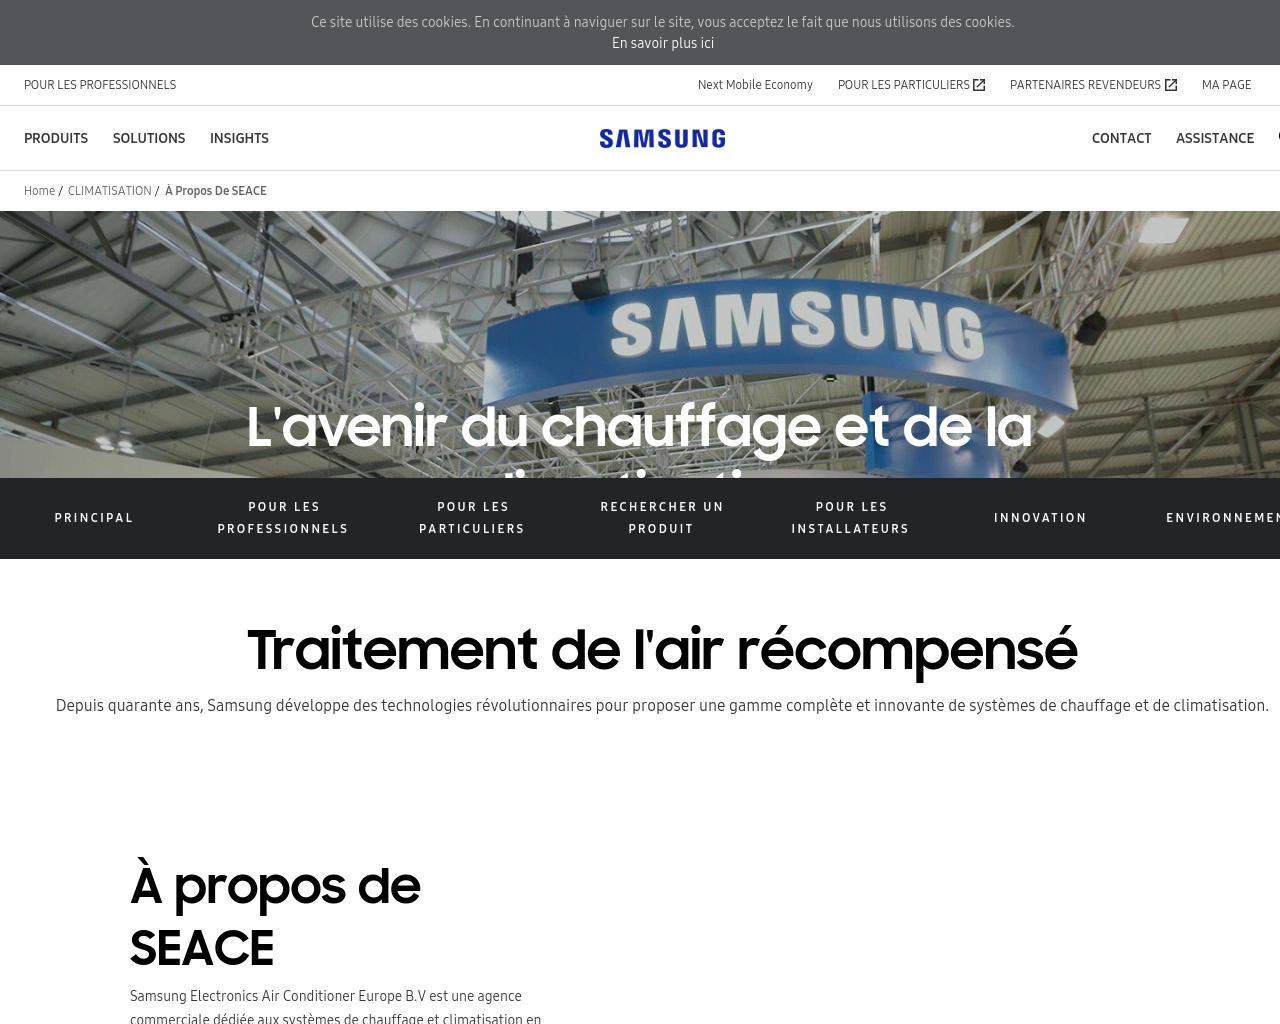 SAMSUNG ELECTRONICS AIRCONDITIONER EUROPE BV